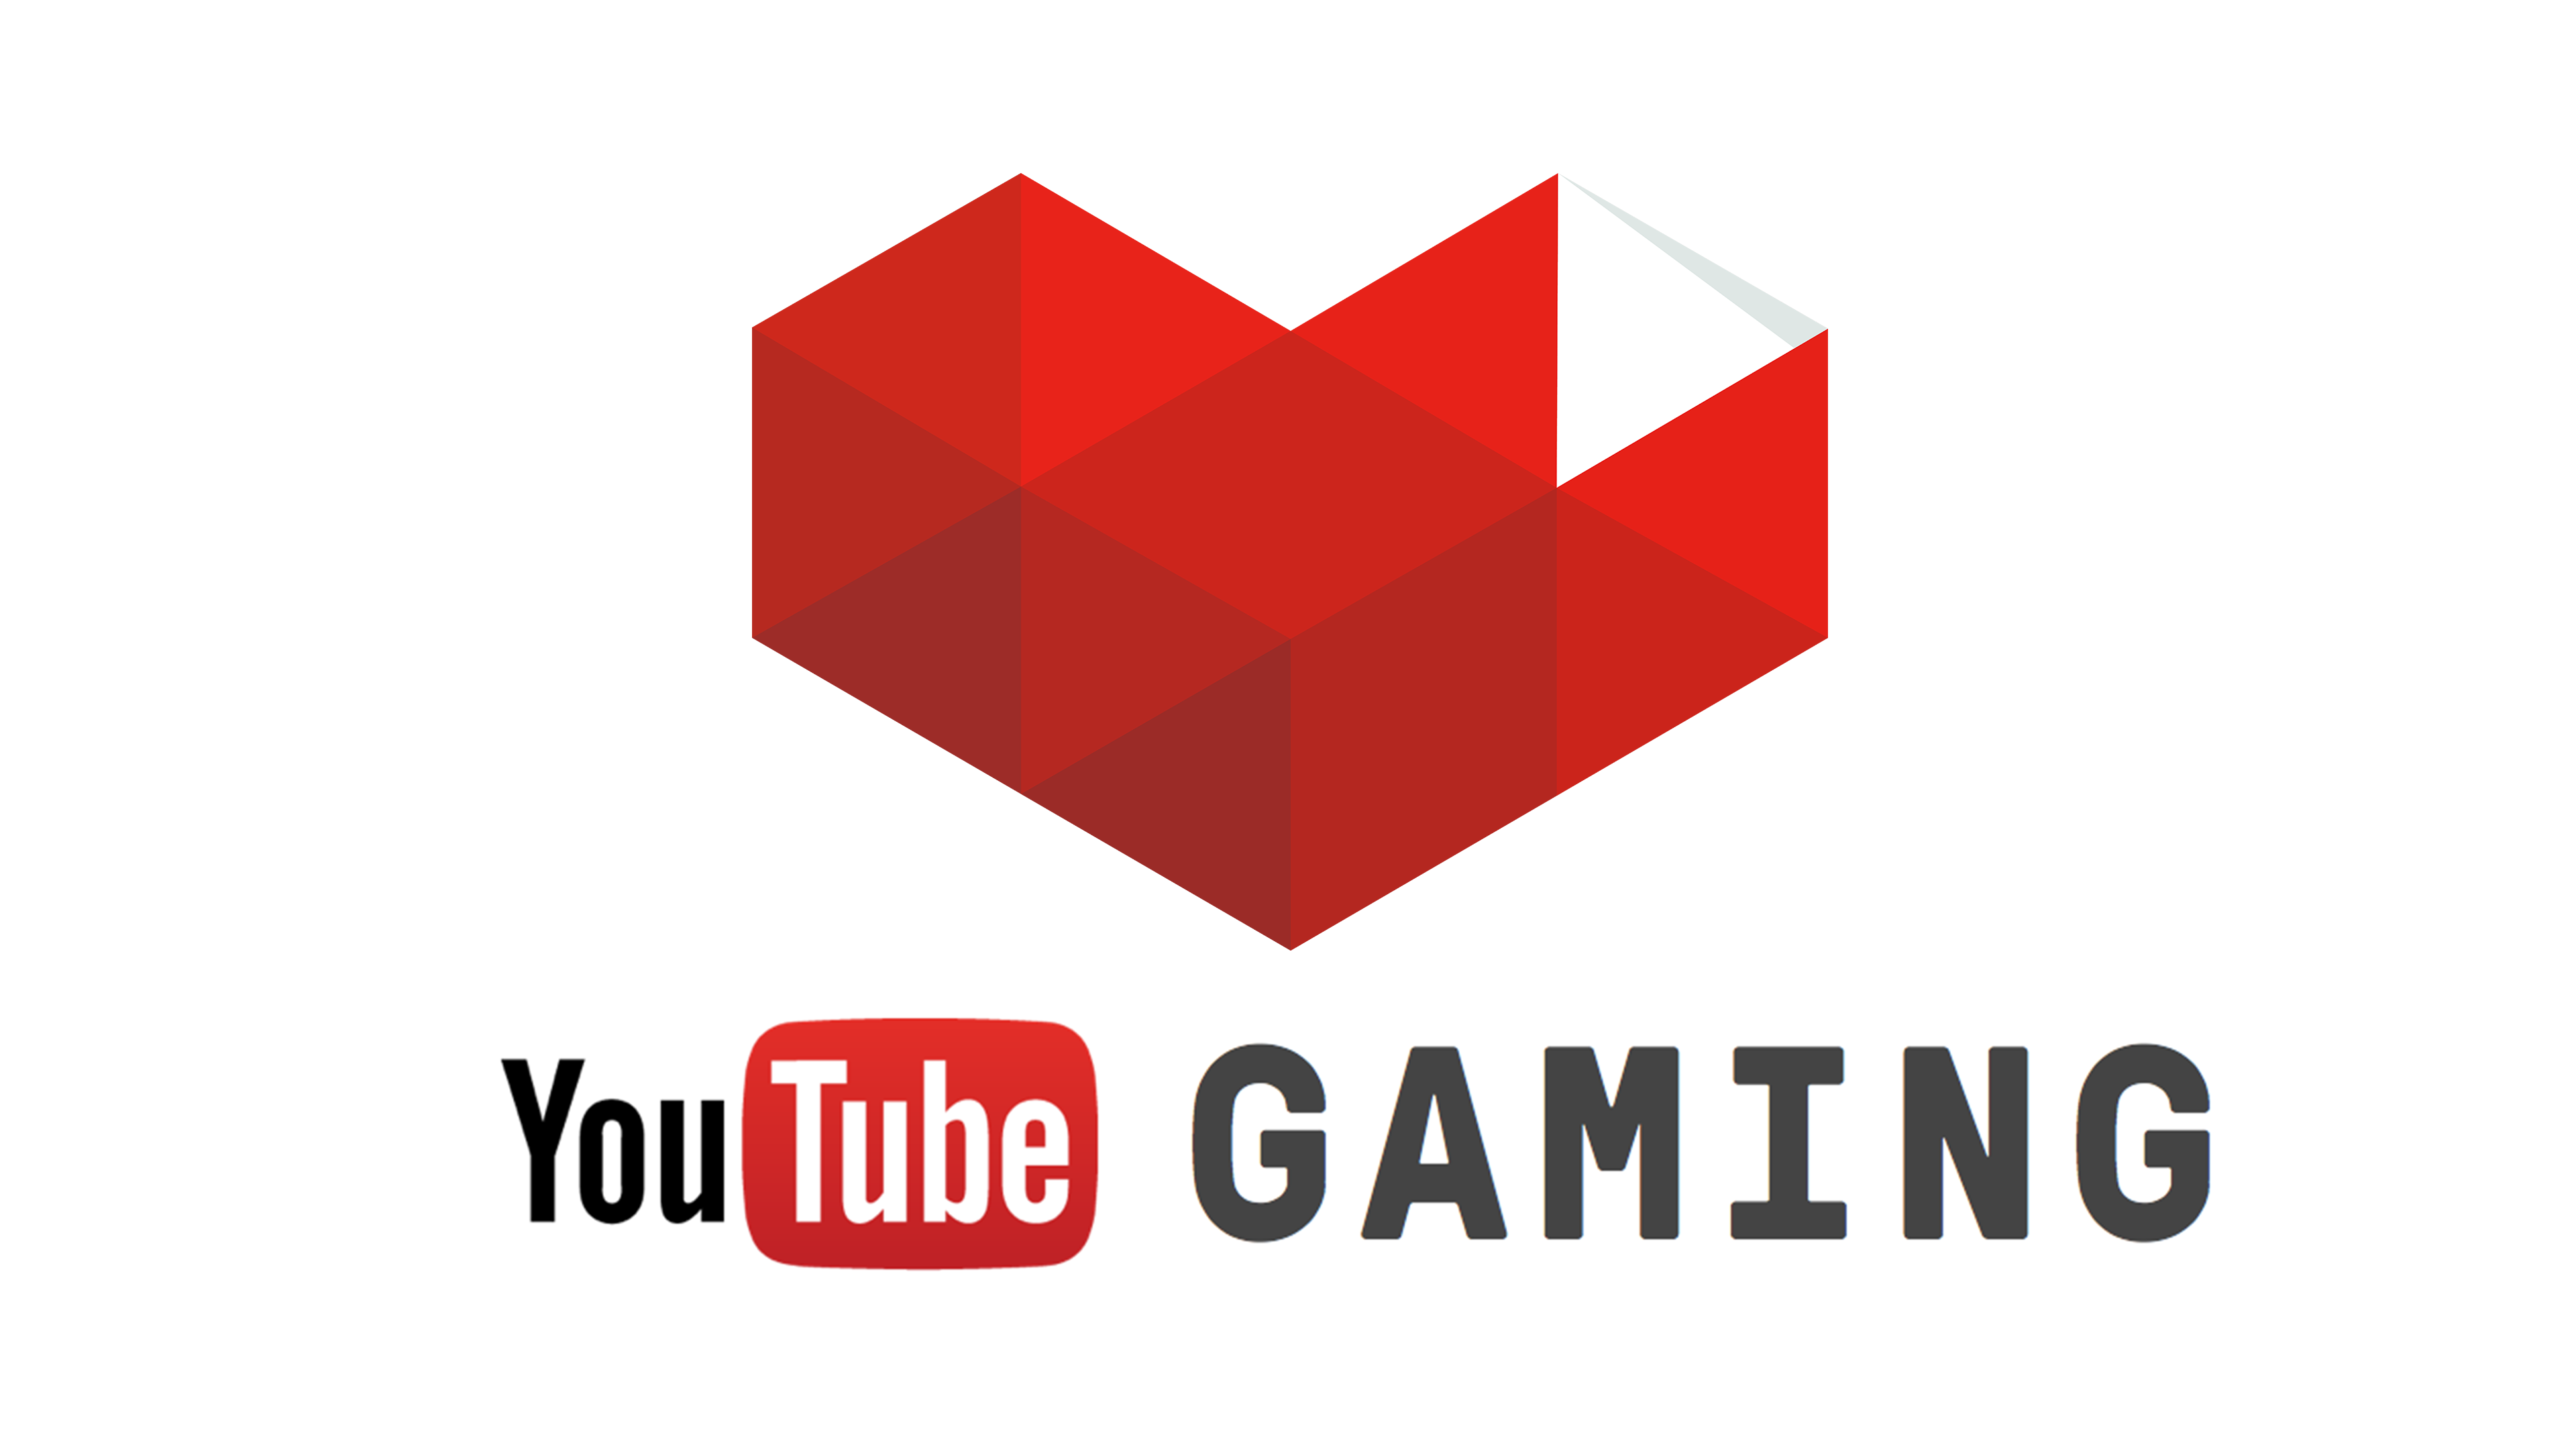 youtuba gaming slide_2